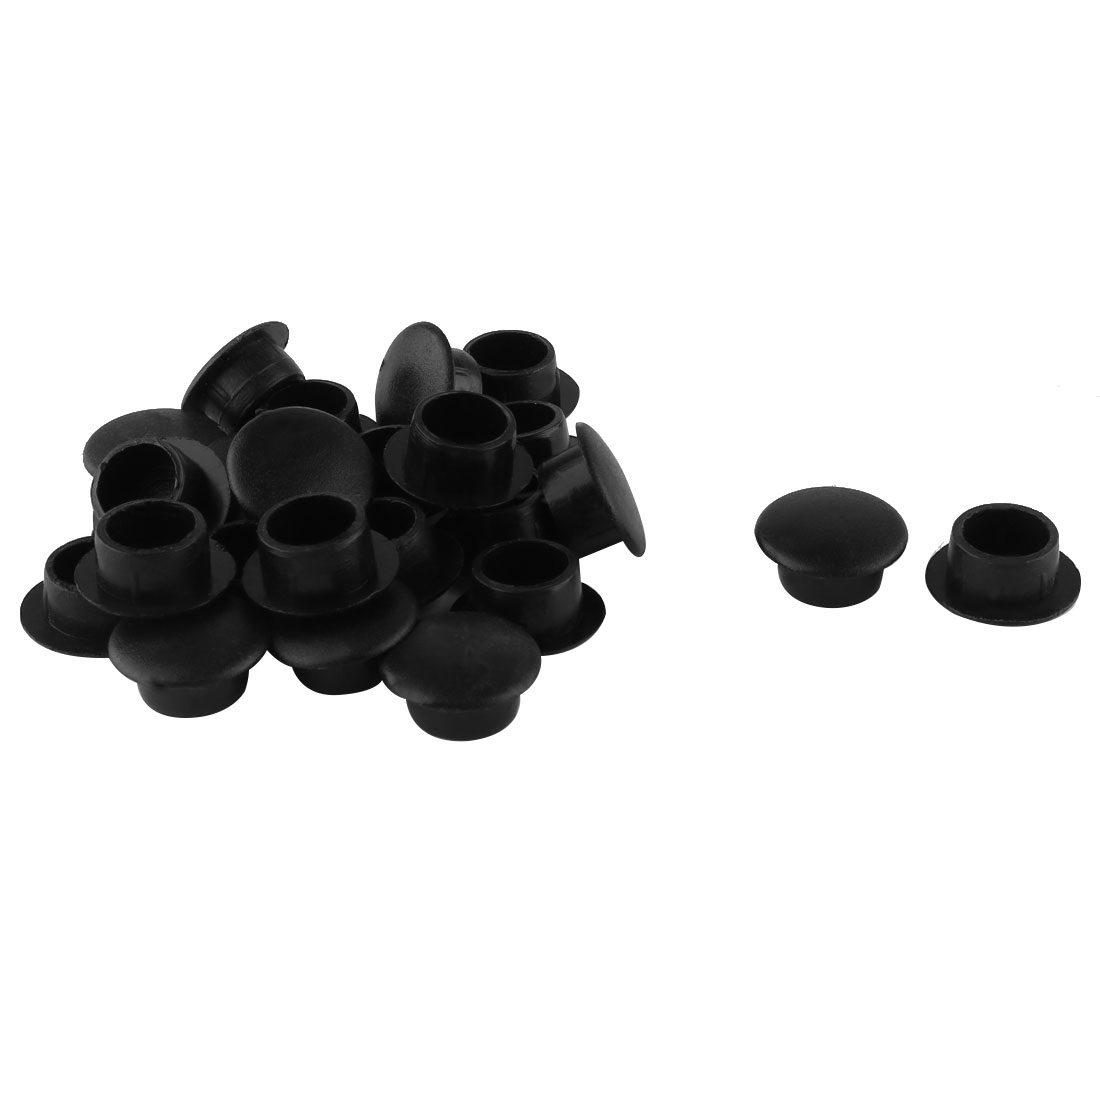 24 Pcs Plastic 10mm Diameter Flush Mounted Hole Plug Caps Cover Black